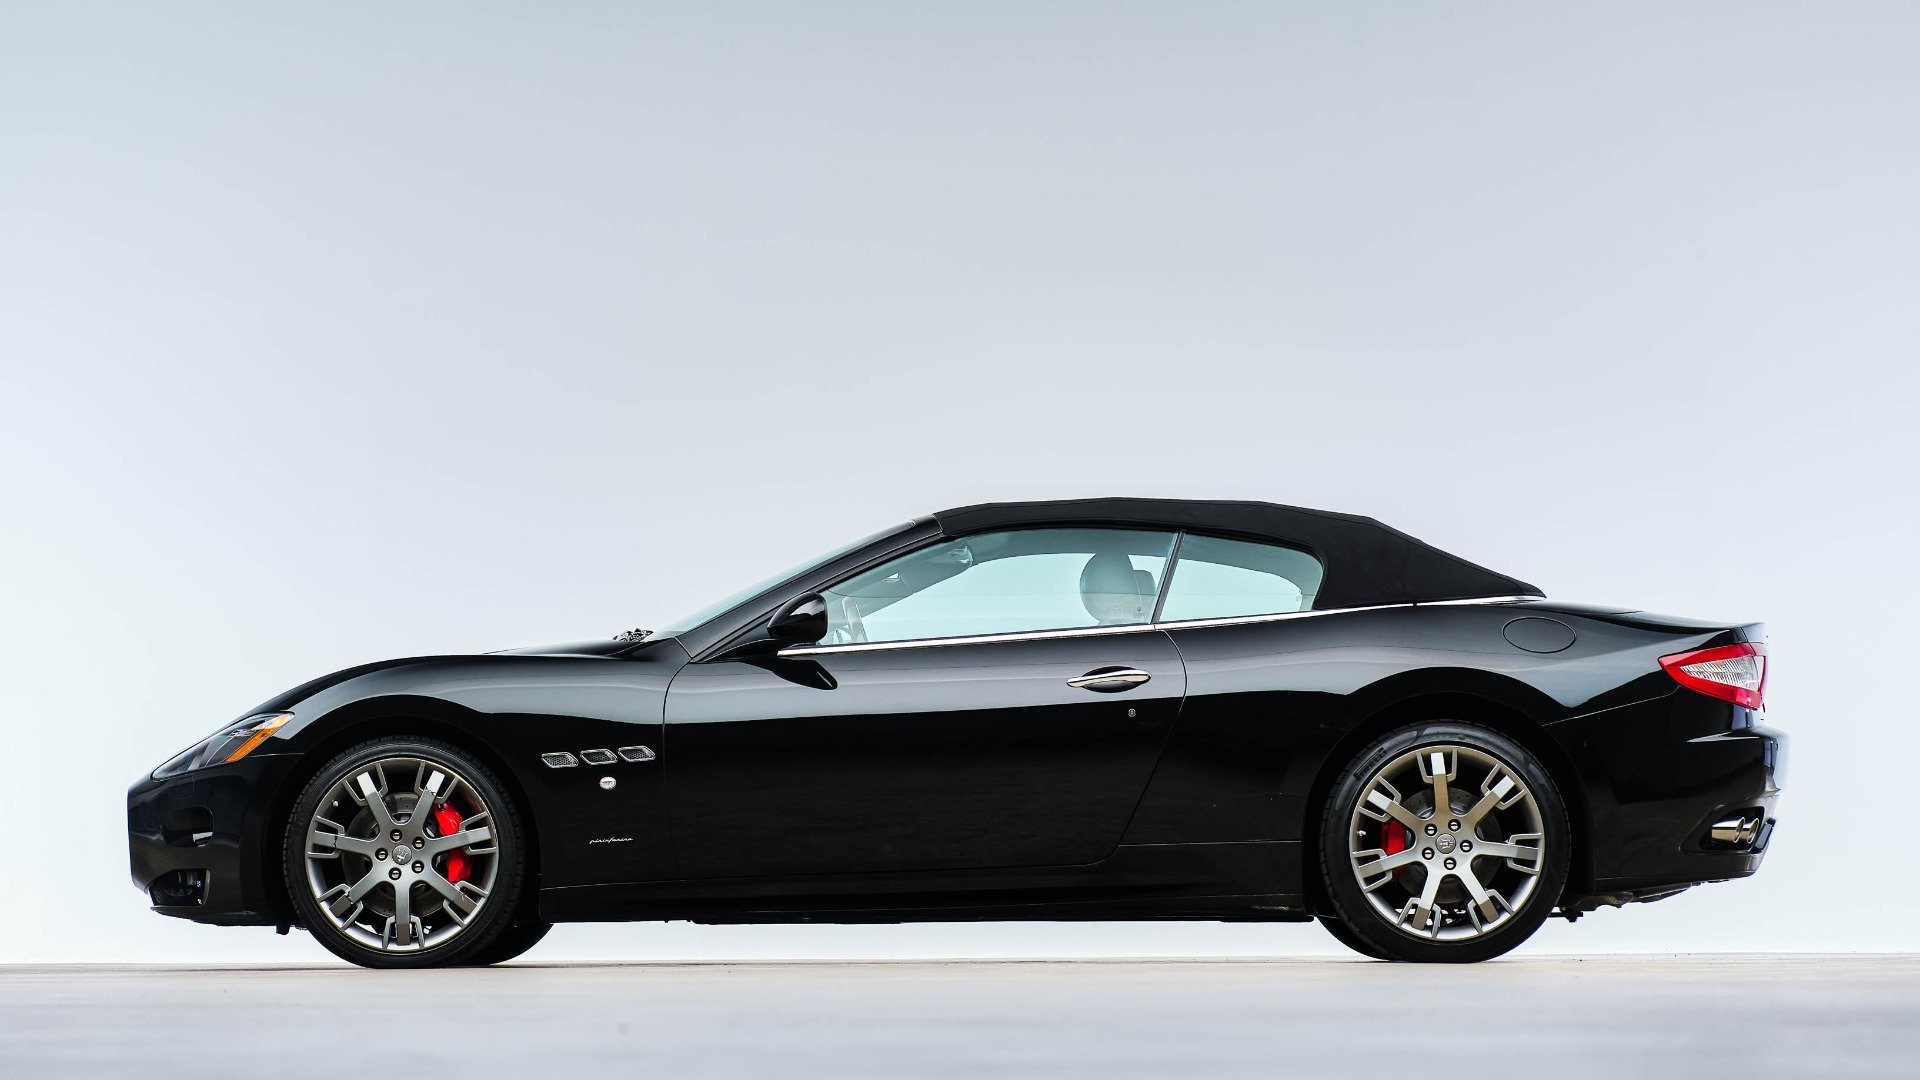 2015 Maserati GranTurismo Convertible 38k miles Black $48.9k For Sale (picture 3 of 12)